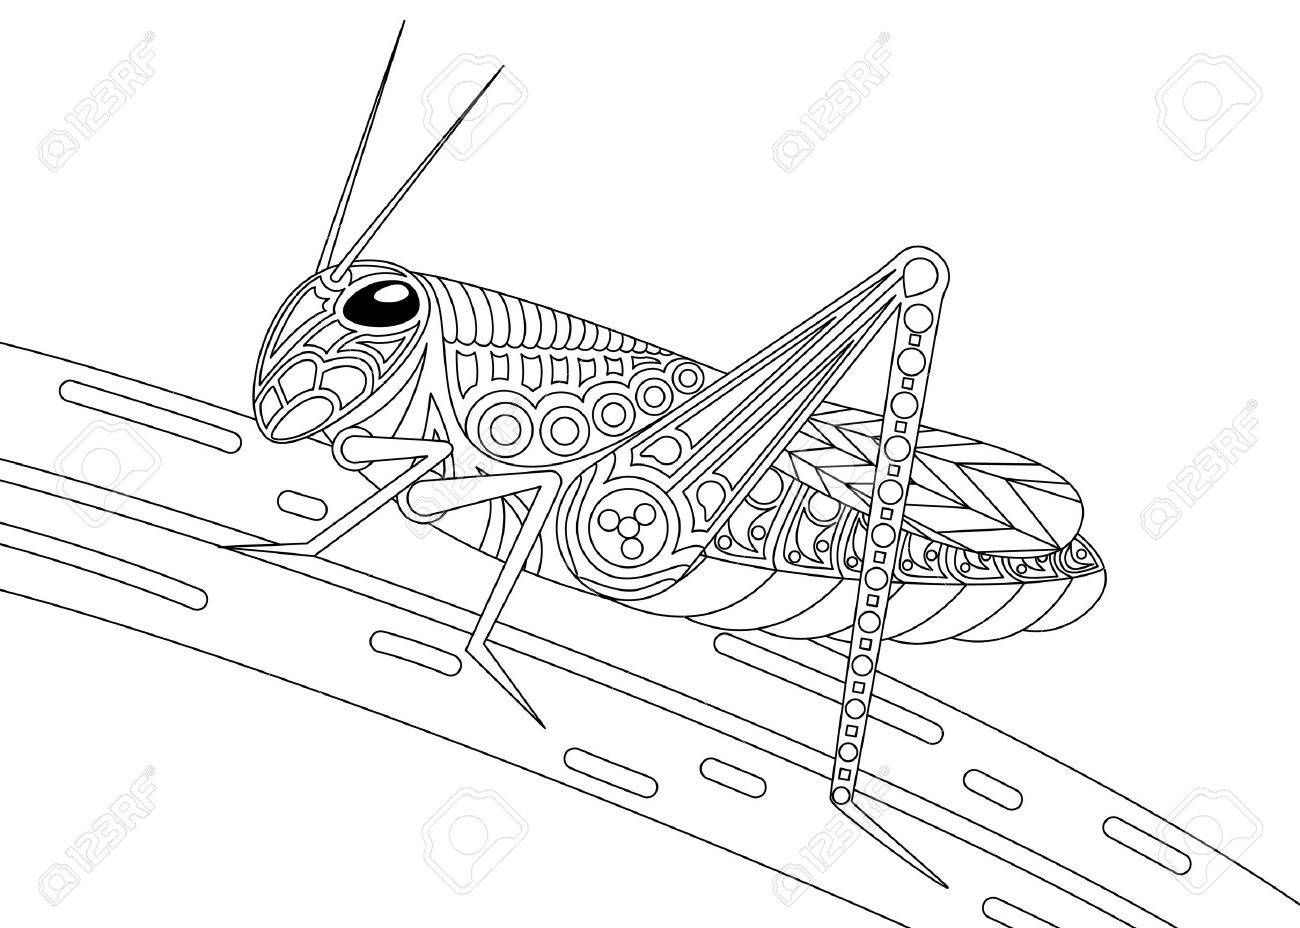 Monochrome Grasshopper Coloring Page Black Over White. Royalty Free ...